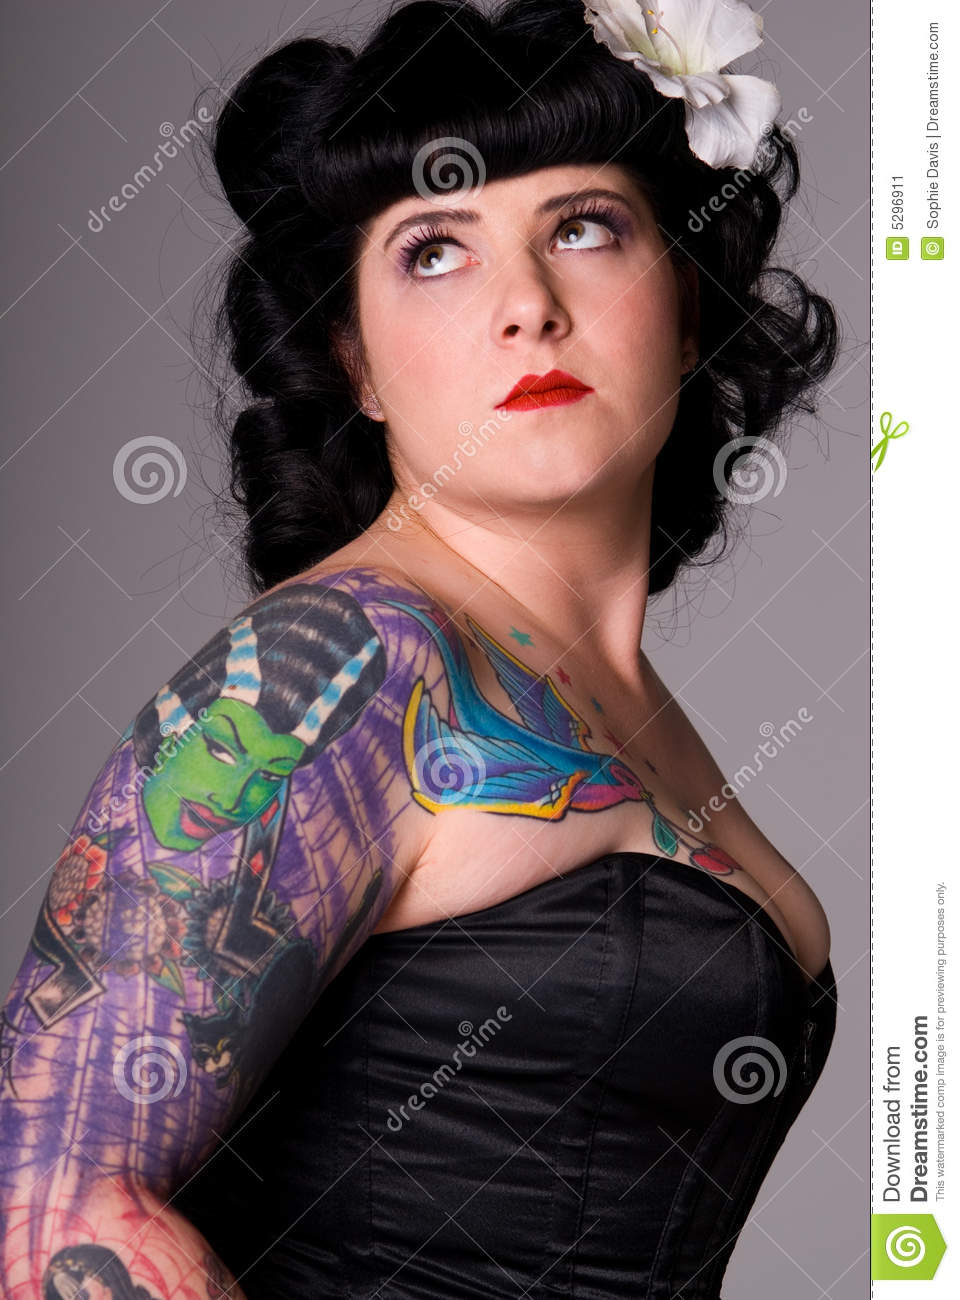 Woman with colorful tattoos.